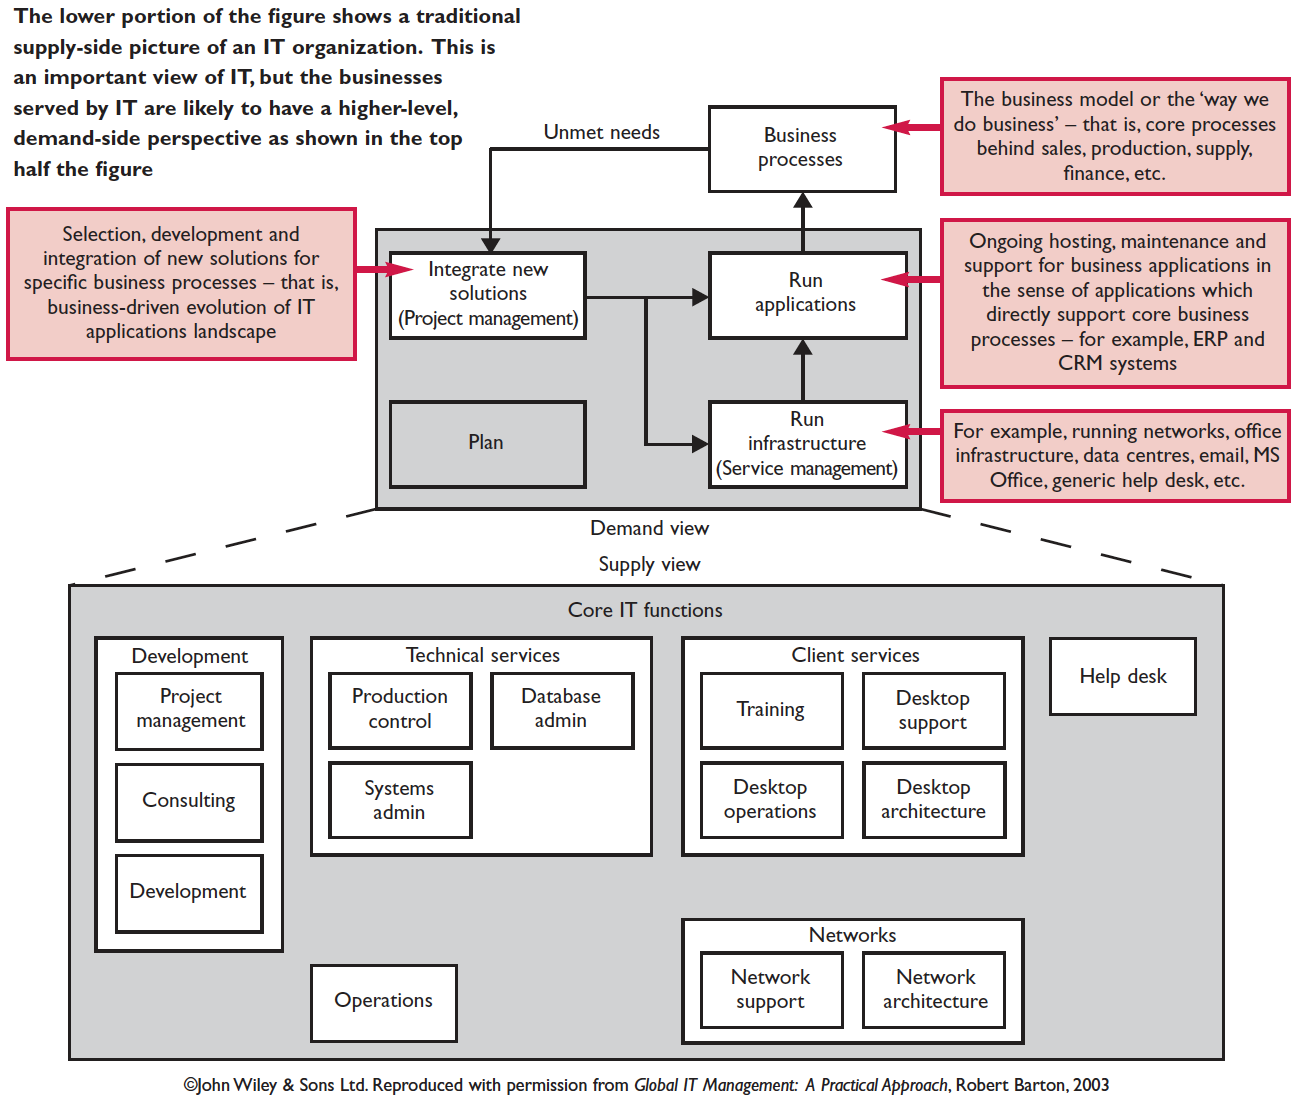 Figure 1. Core IT services and functions viewed from business demand and IT supply perspectives